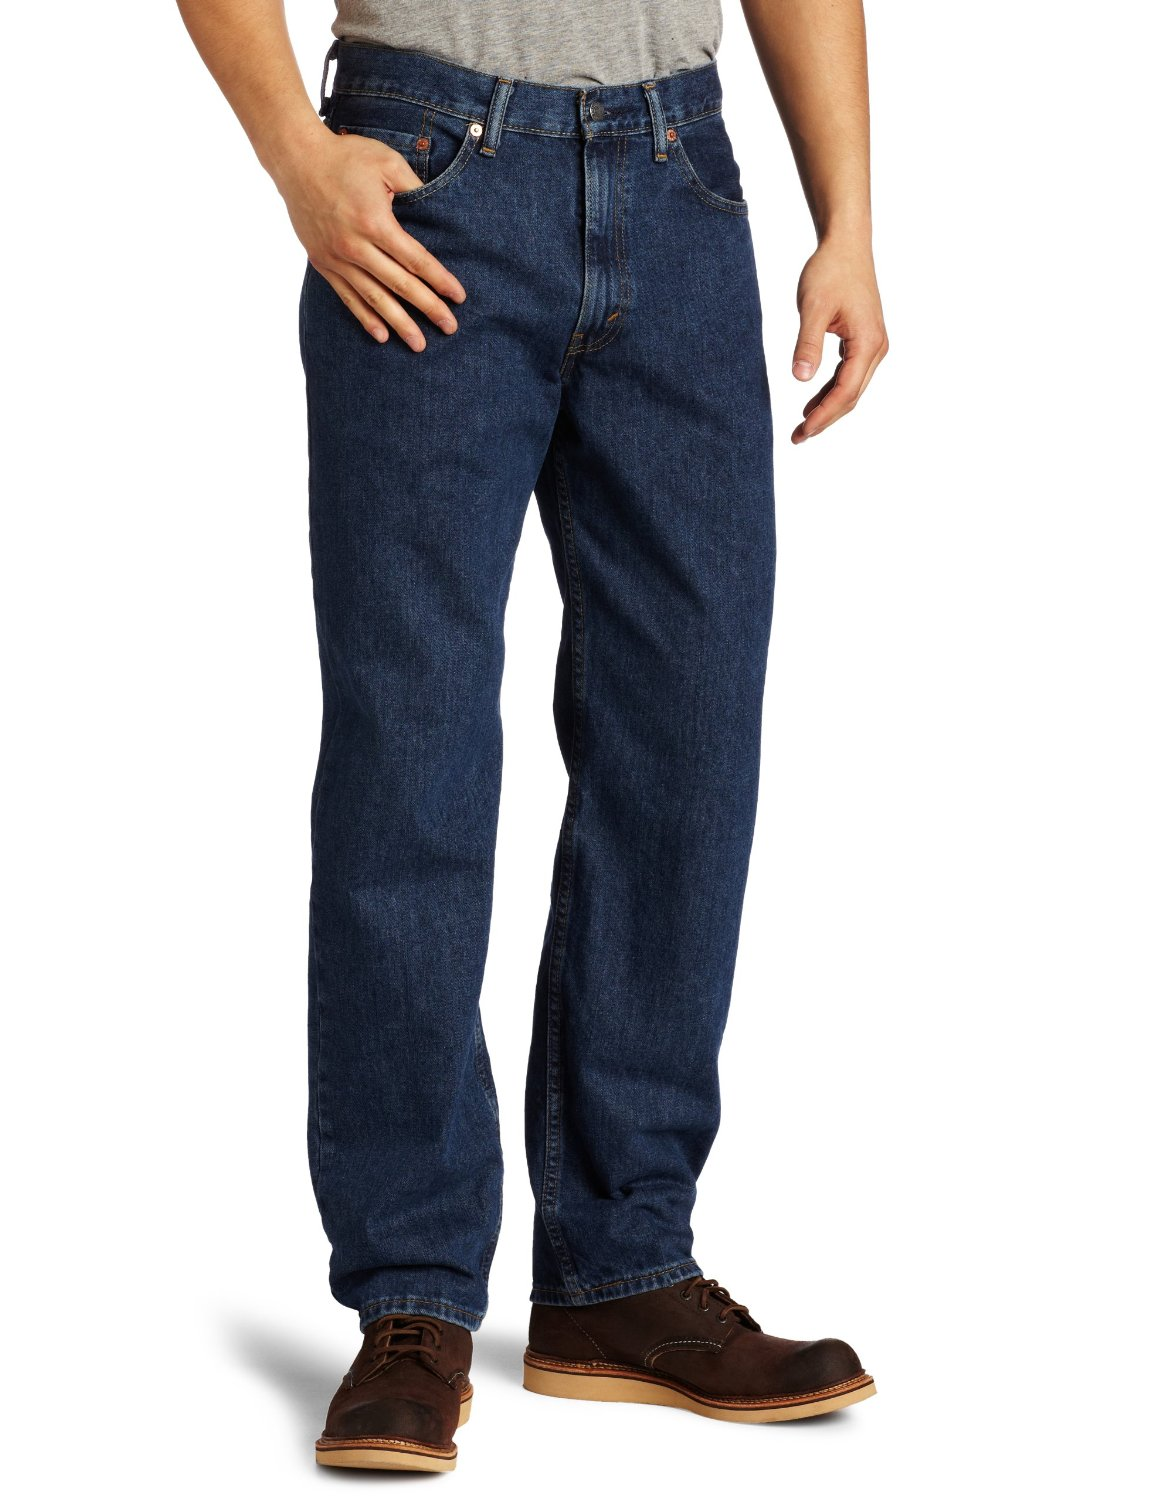 Men's jeans come in a variety of cuts and colors. When choosing the right pair, you'll need to consider where you're wearing them, the activity you're doing, your body type, and your personal style. Different styles of men's jeans.